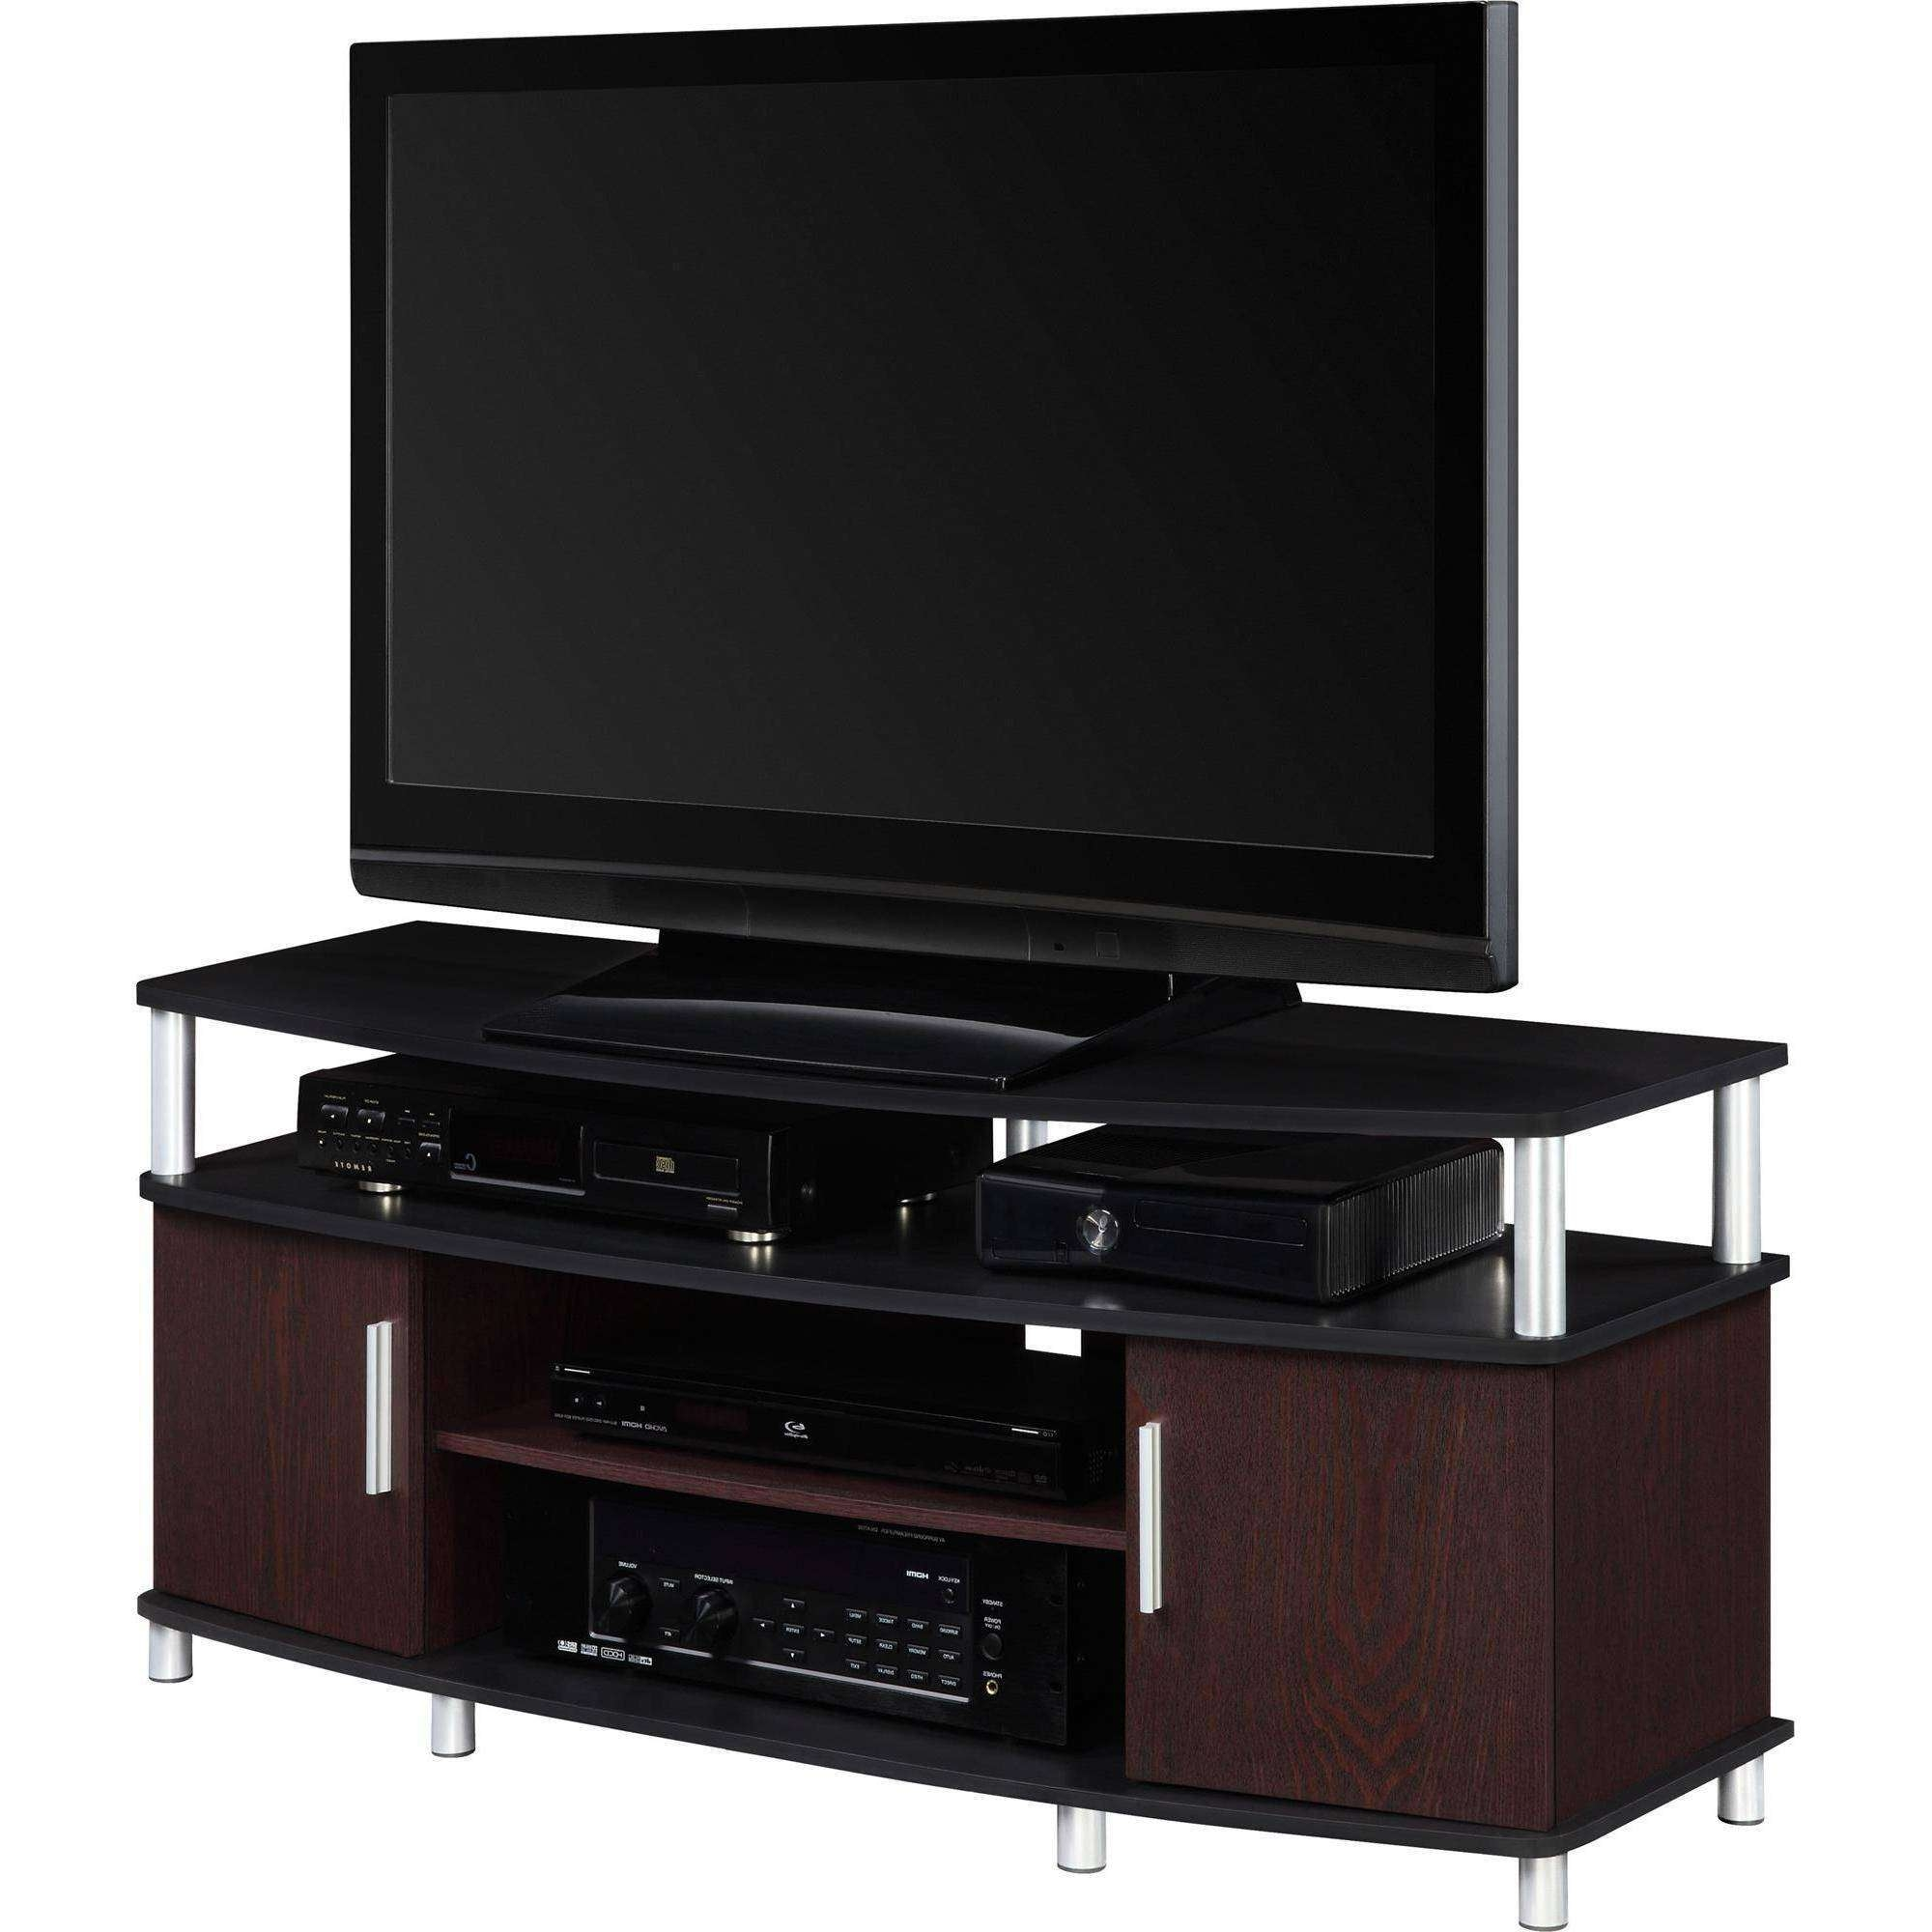 Great Corner Tv Stands For 50 Inch Tv 61 In Interior Decor Home In 50 Inch Corner Tv Cabinets (View 5 of 20)